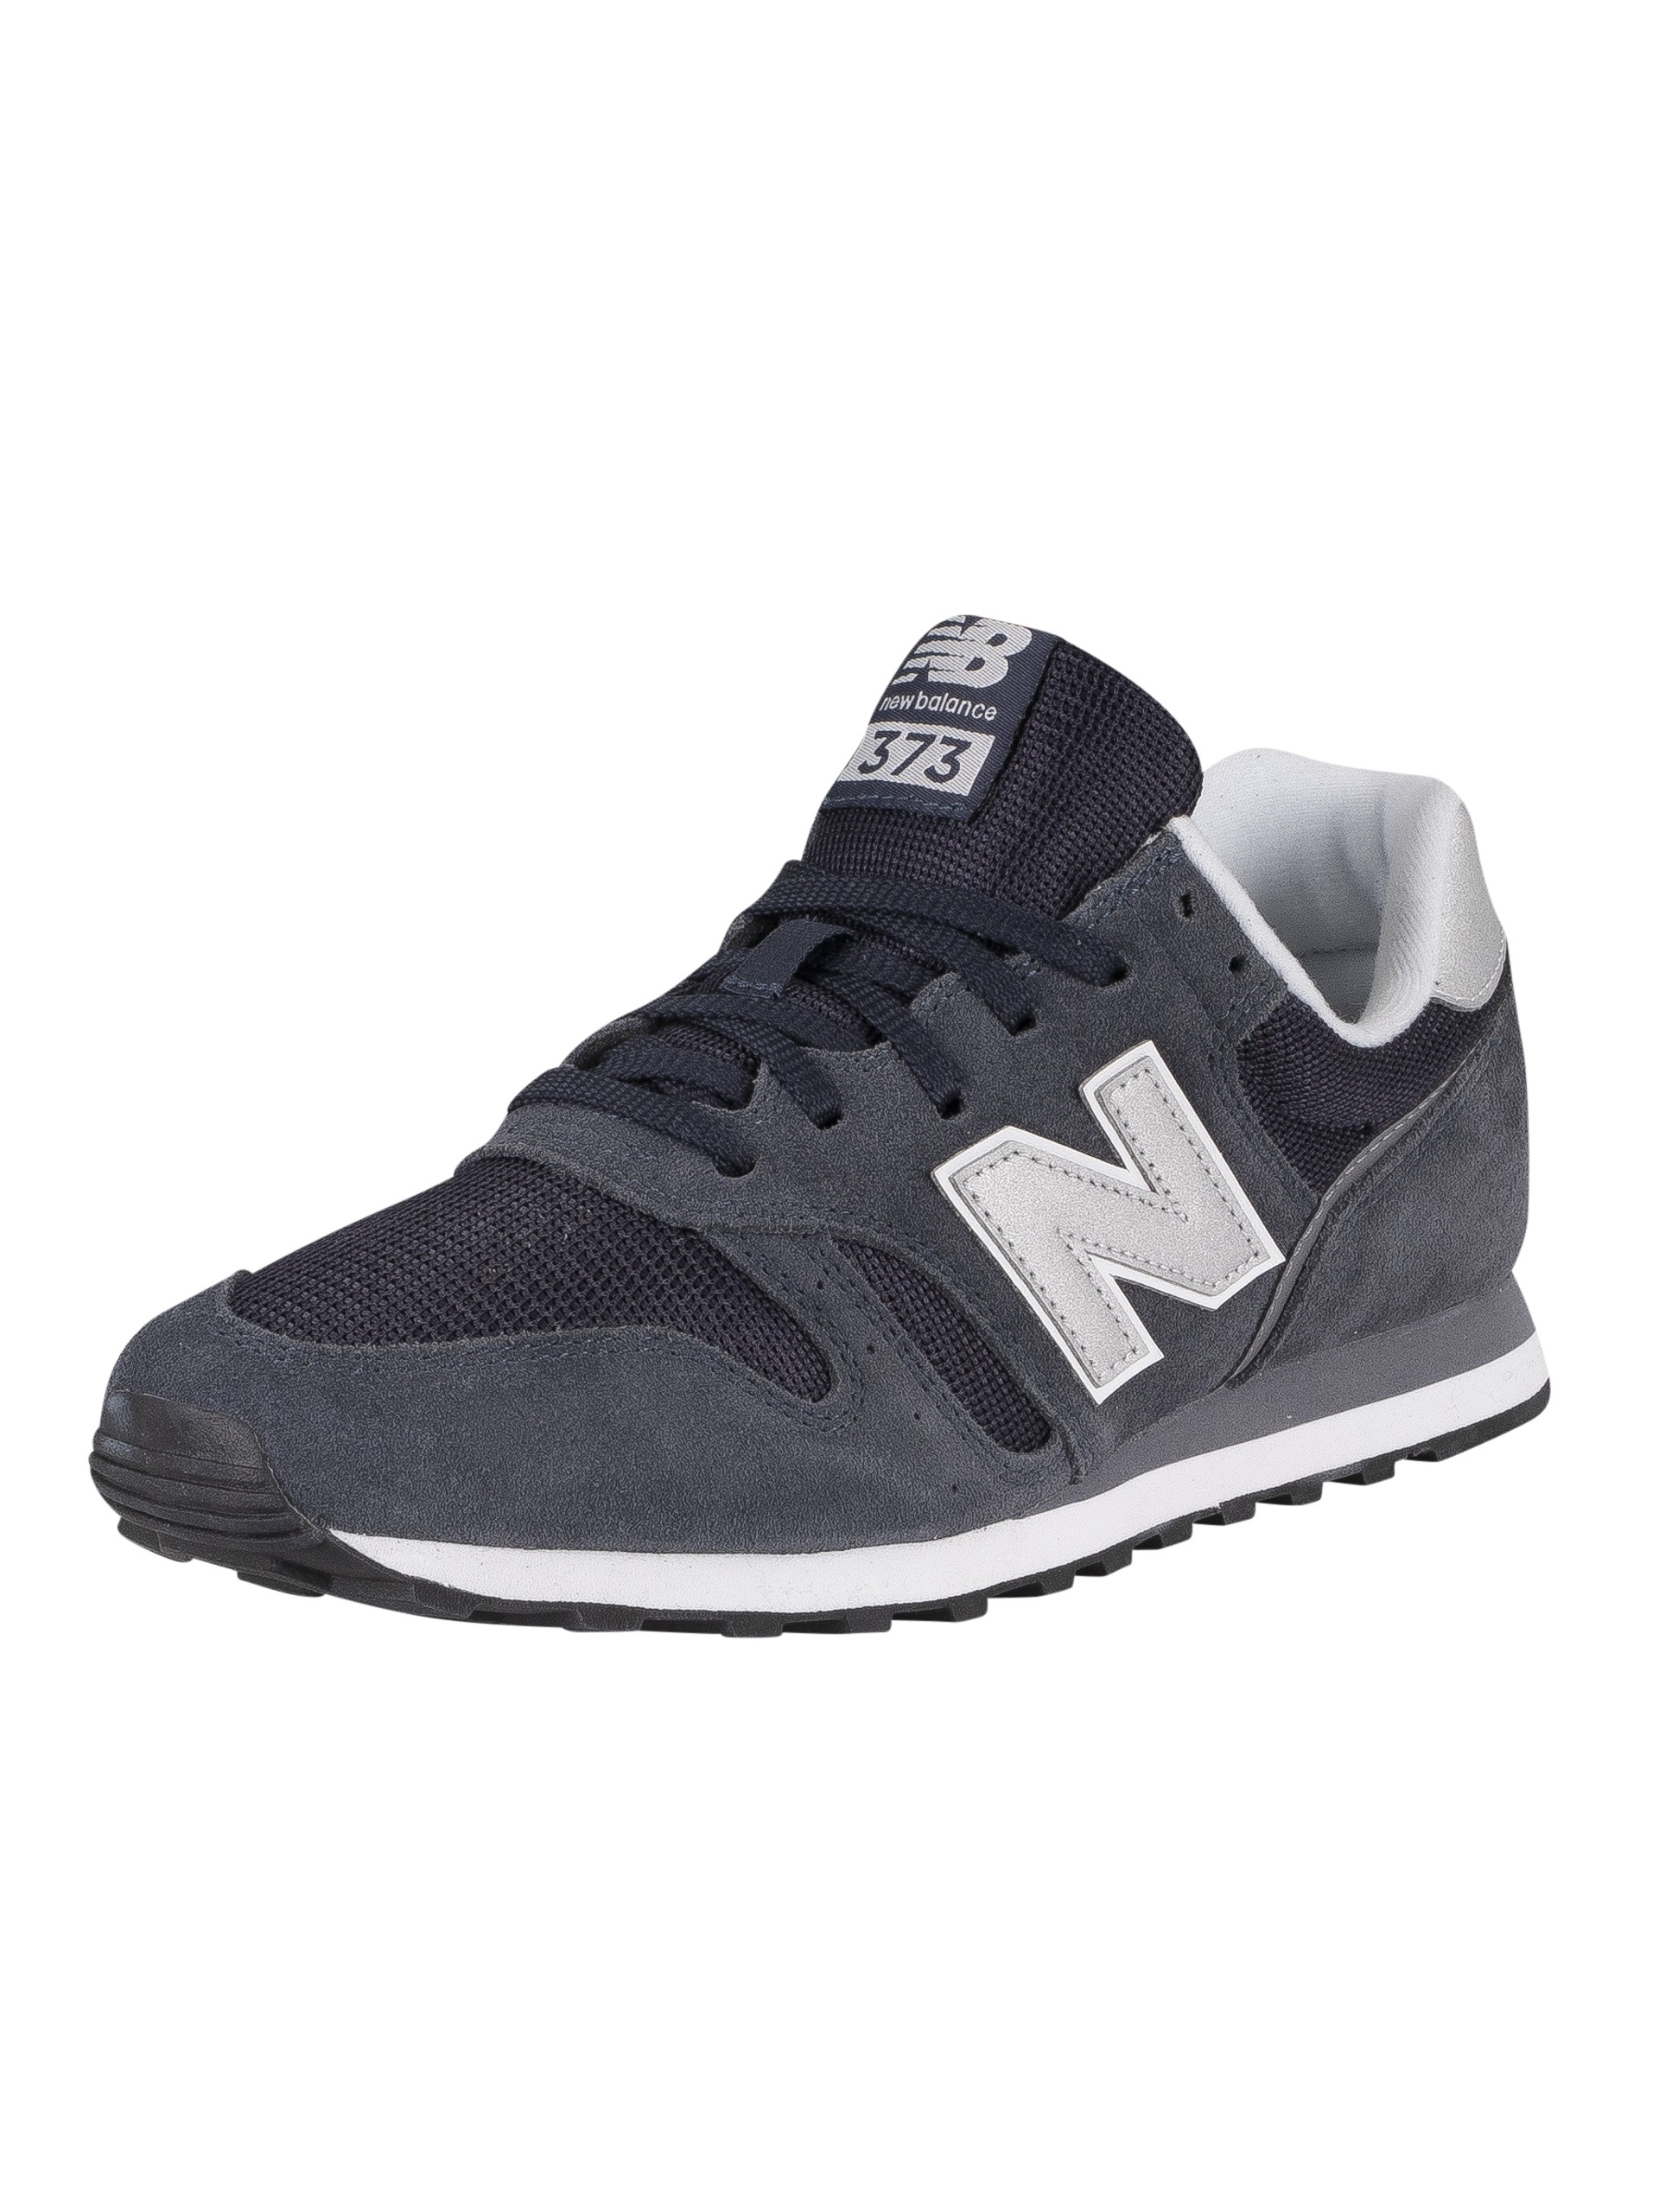 new balance 373 trainers in grey heather, OFF 79%,Welcome to buy!